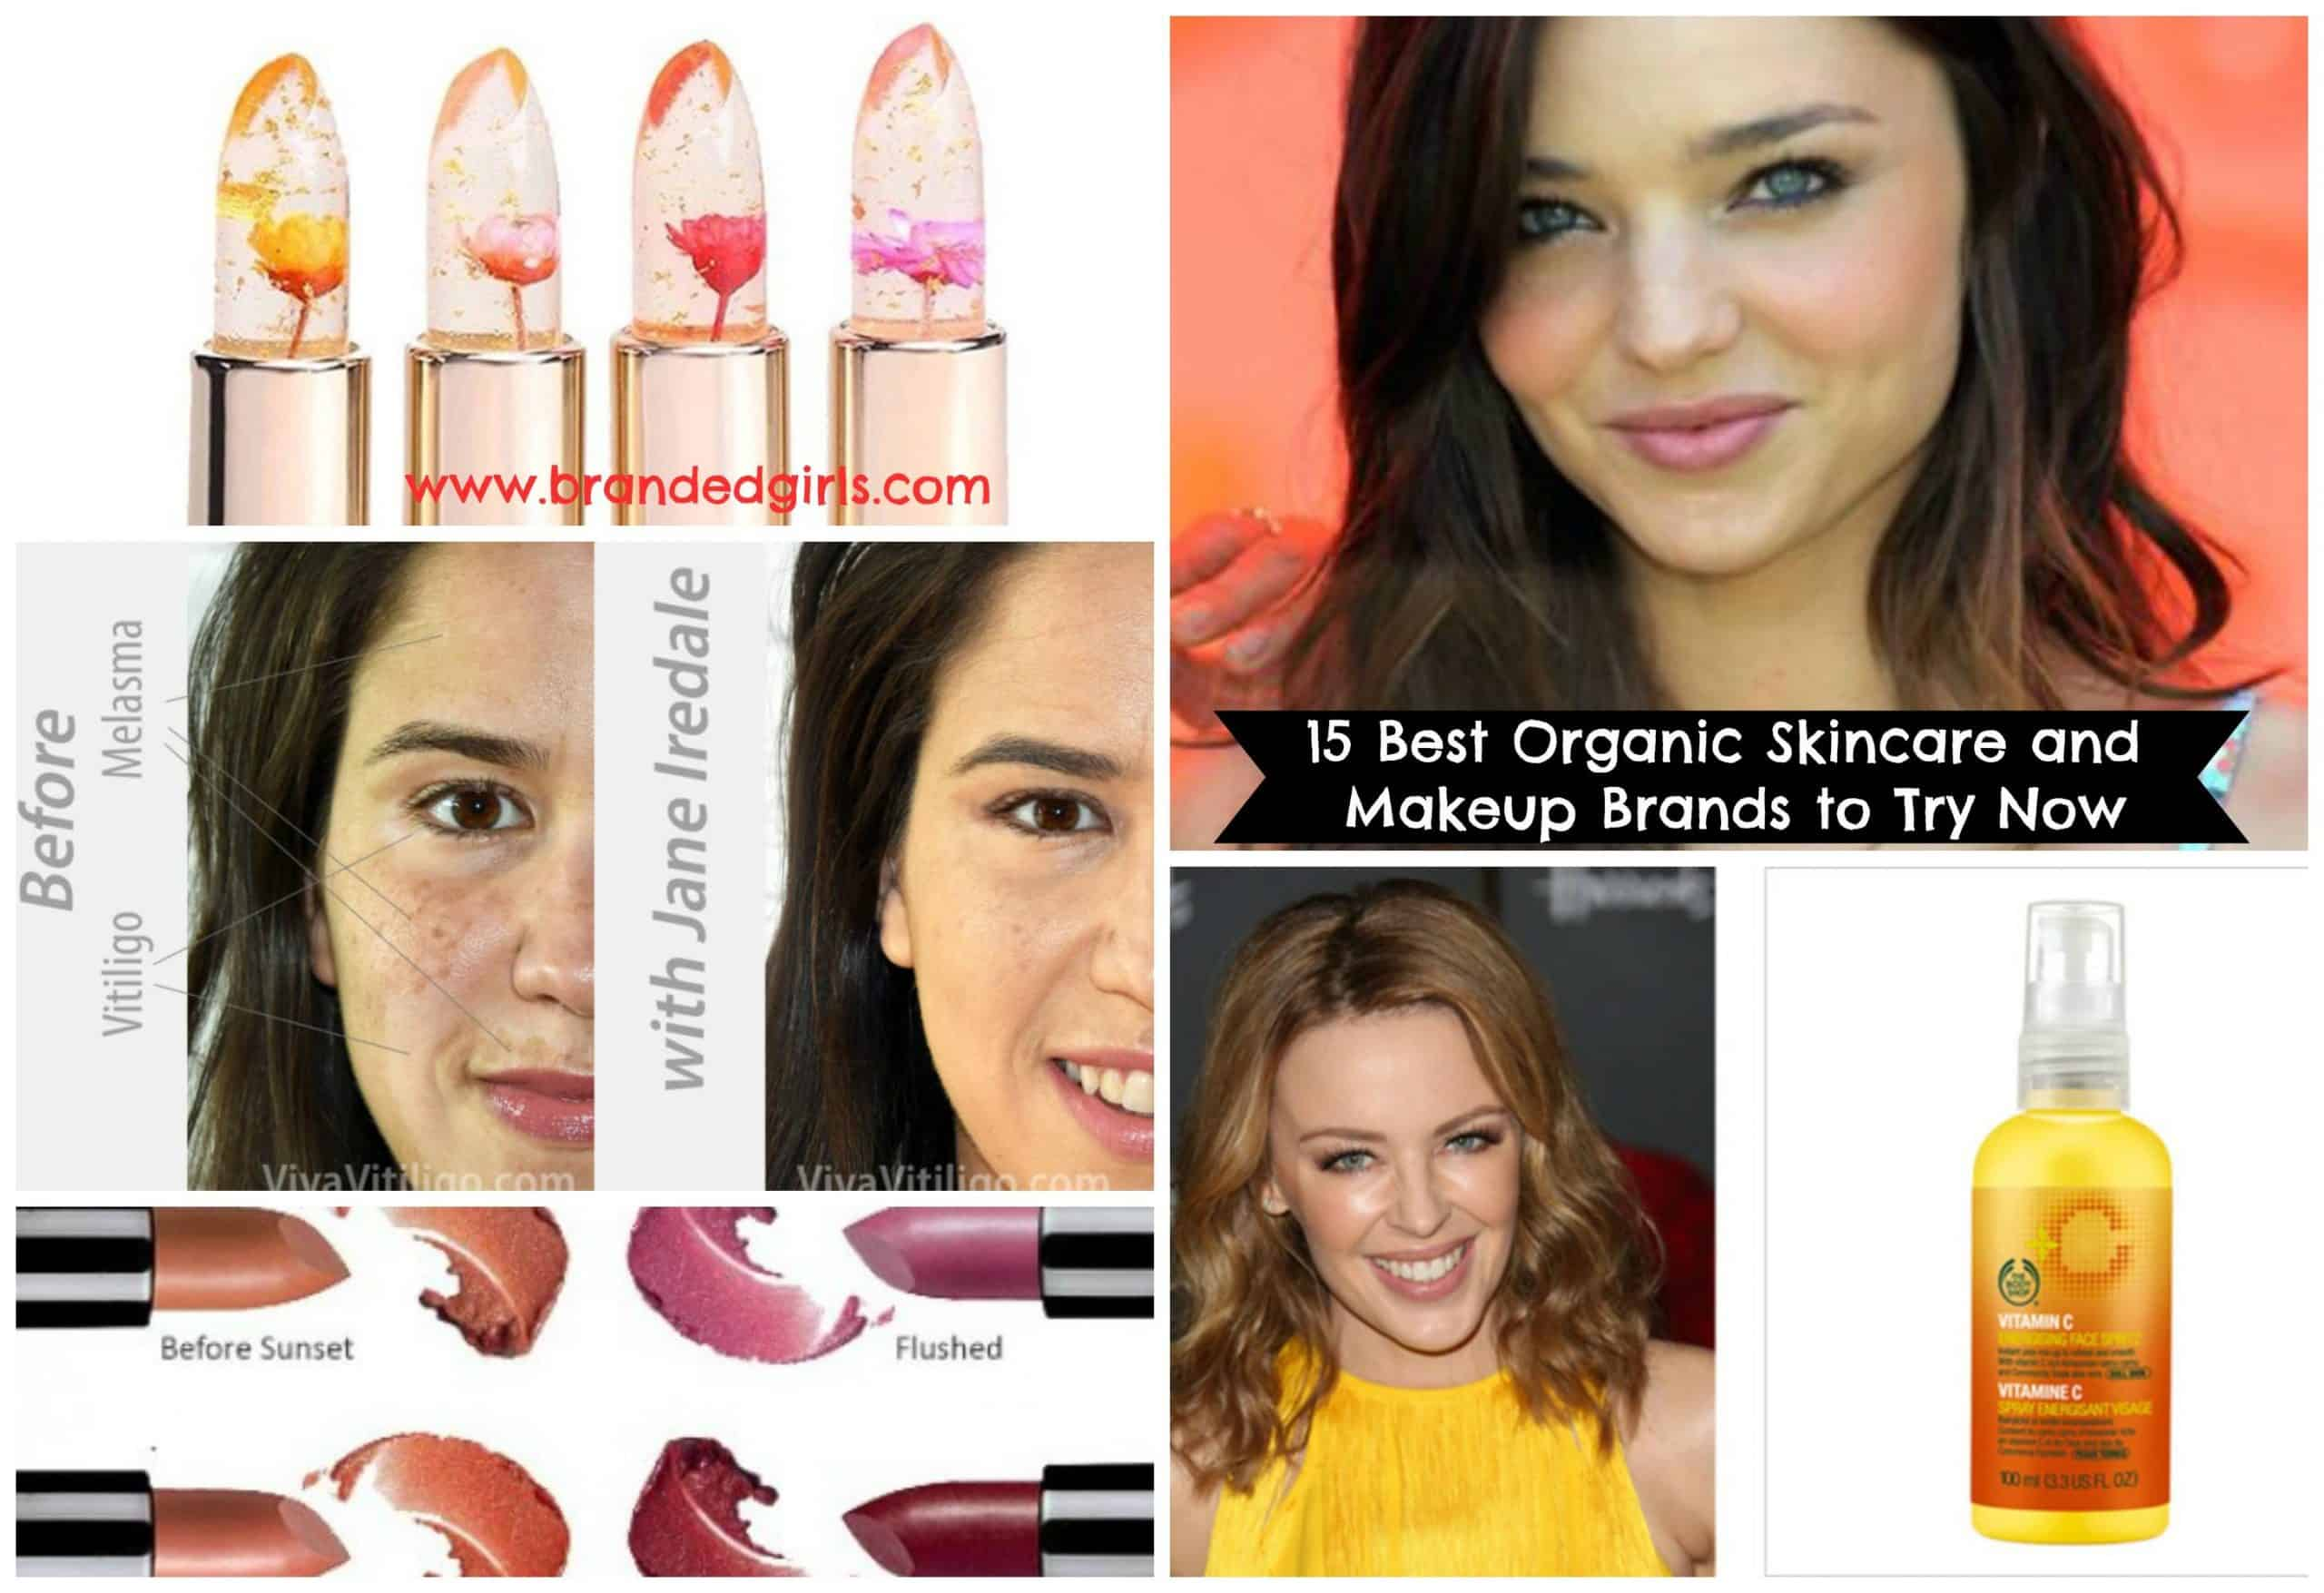 Estremamente Healthy Cosmetic Brands-Top 15 Healthy and Organic Makeup Brands YK36